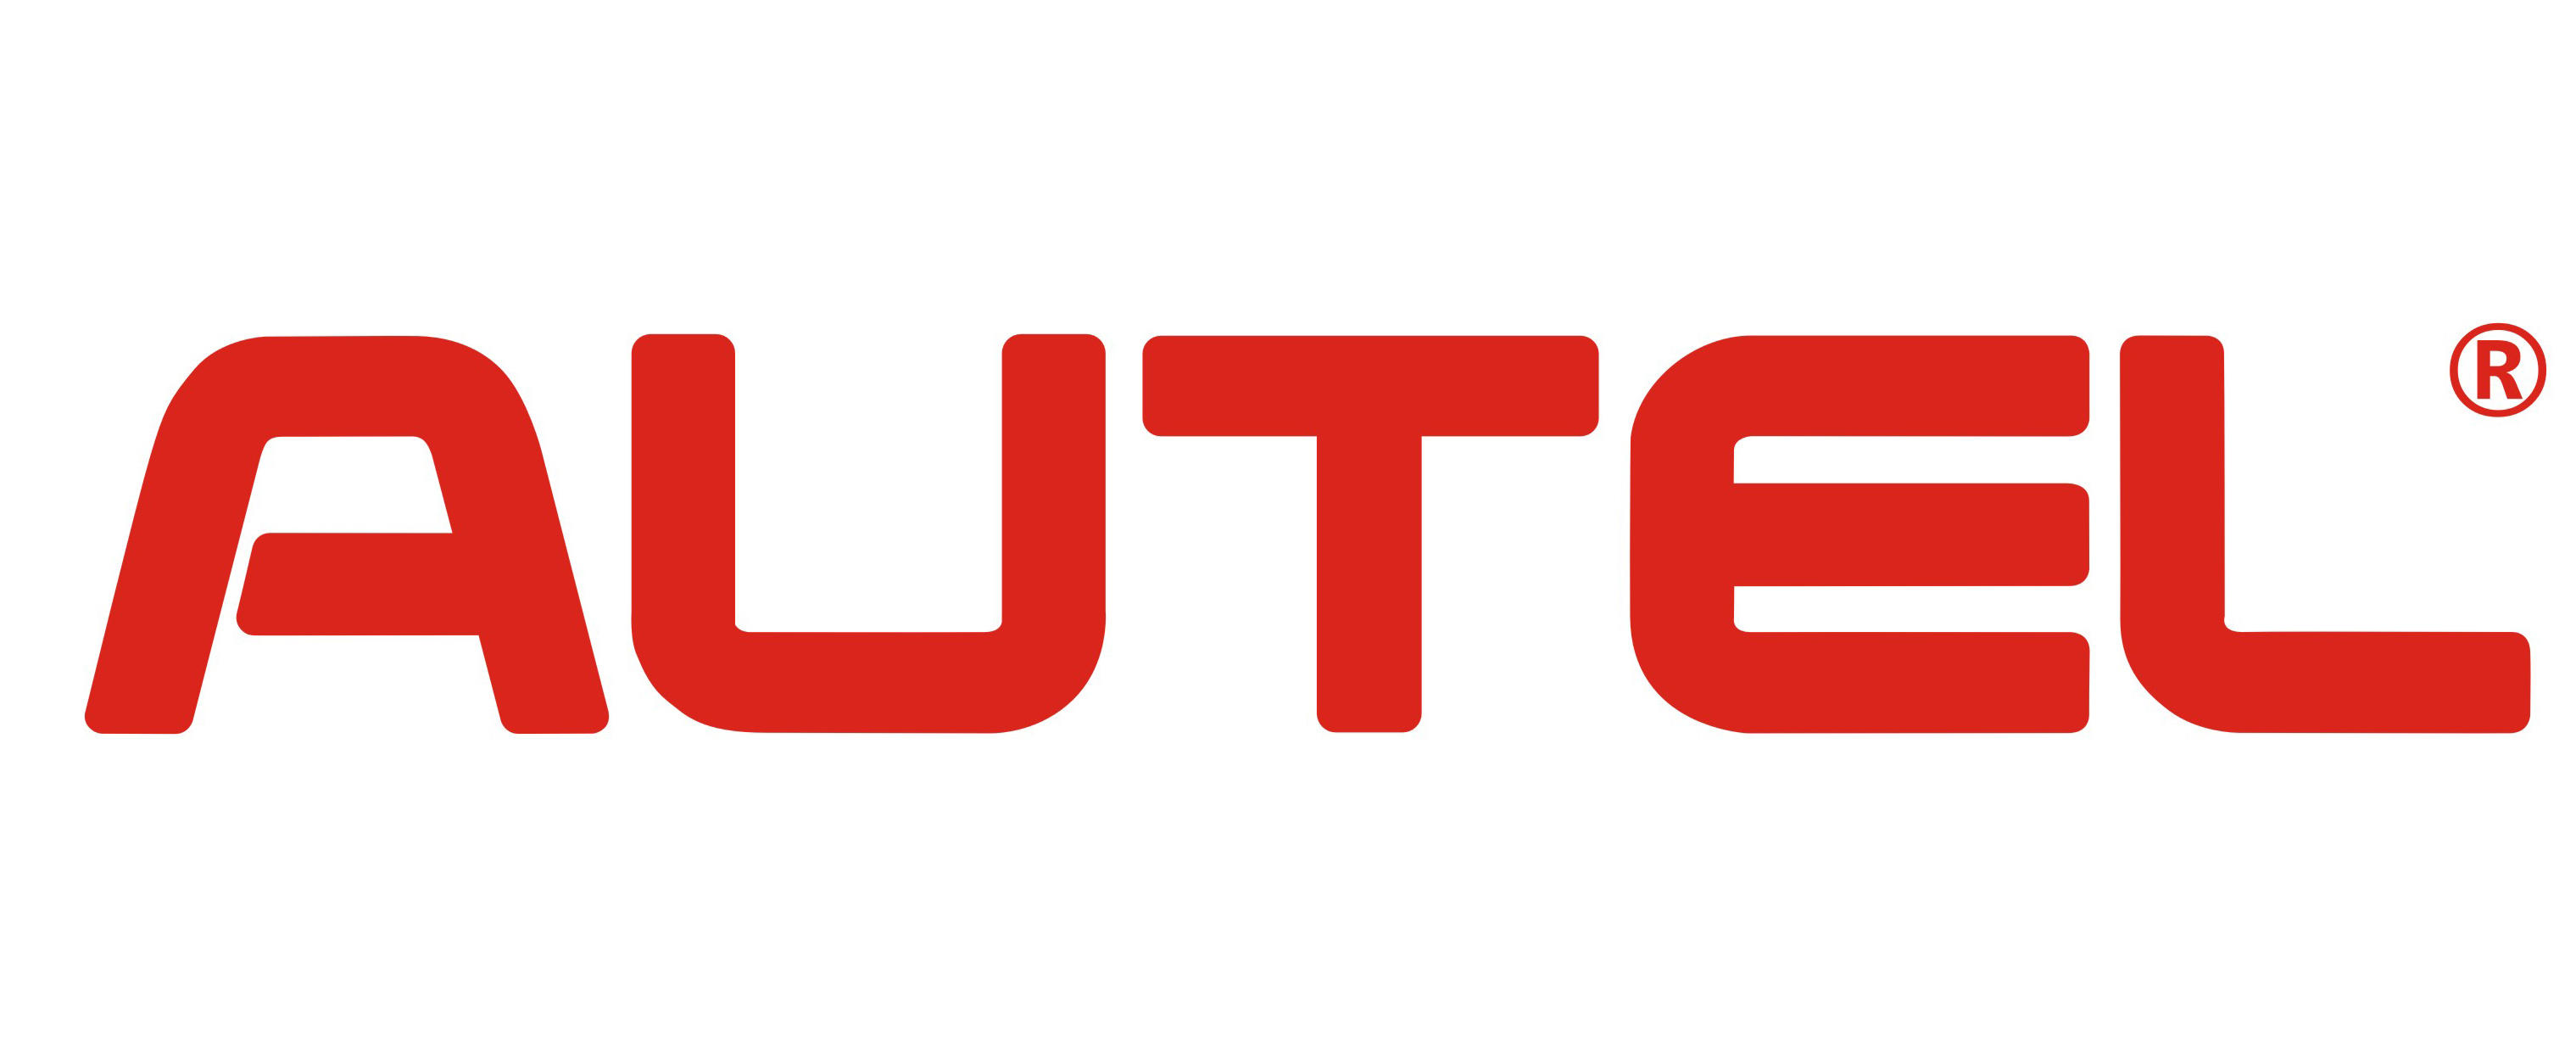 Autel intelligent technology Corp., Ltd | Digital Marketing Specialist job in China | HiredChina.com | Make your next defining career in China | 招聘外国人